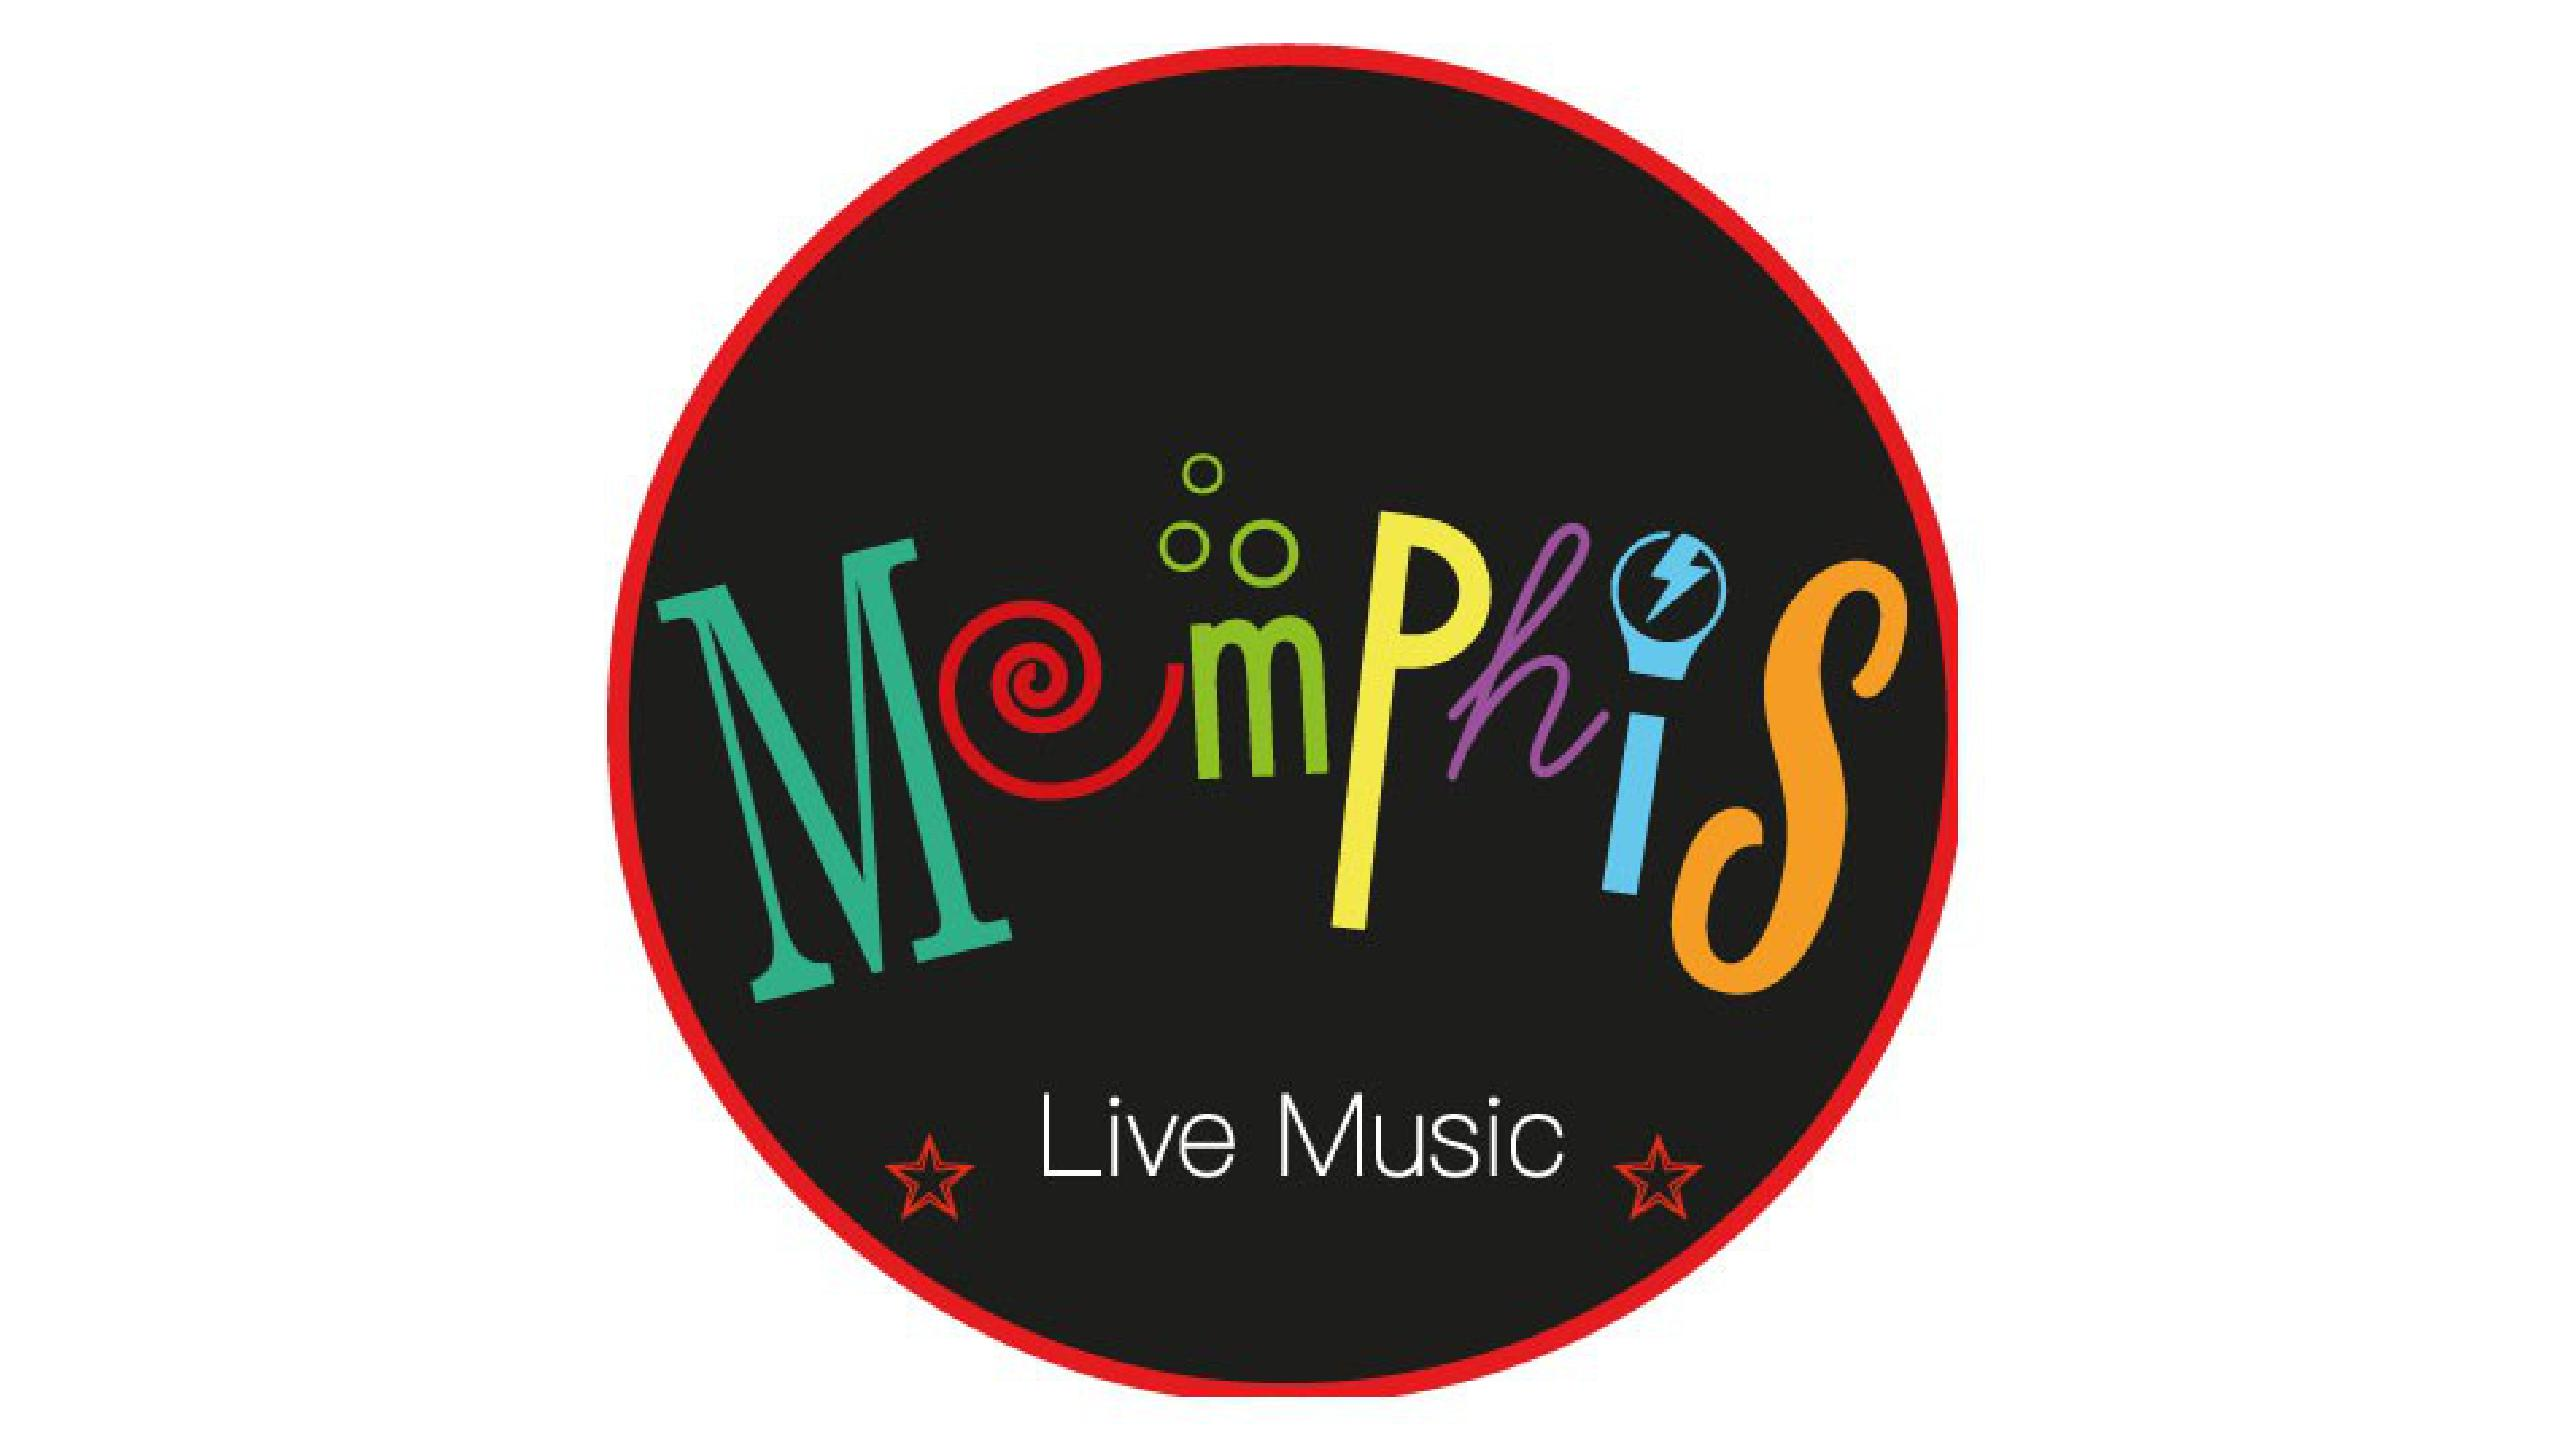 Memphis Live Music Tickets And Concerts 2019 2020 Wegow